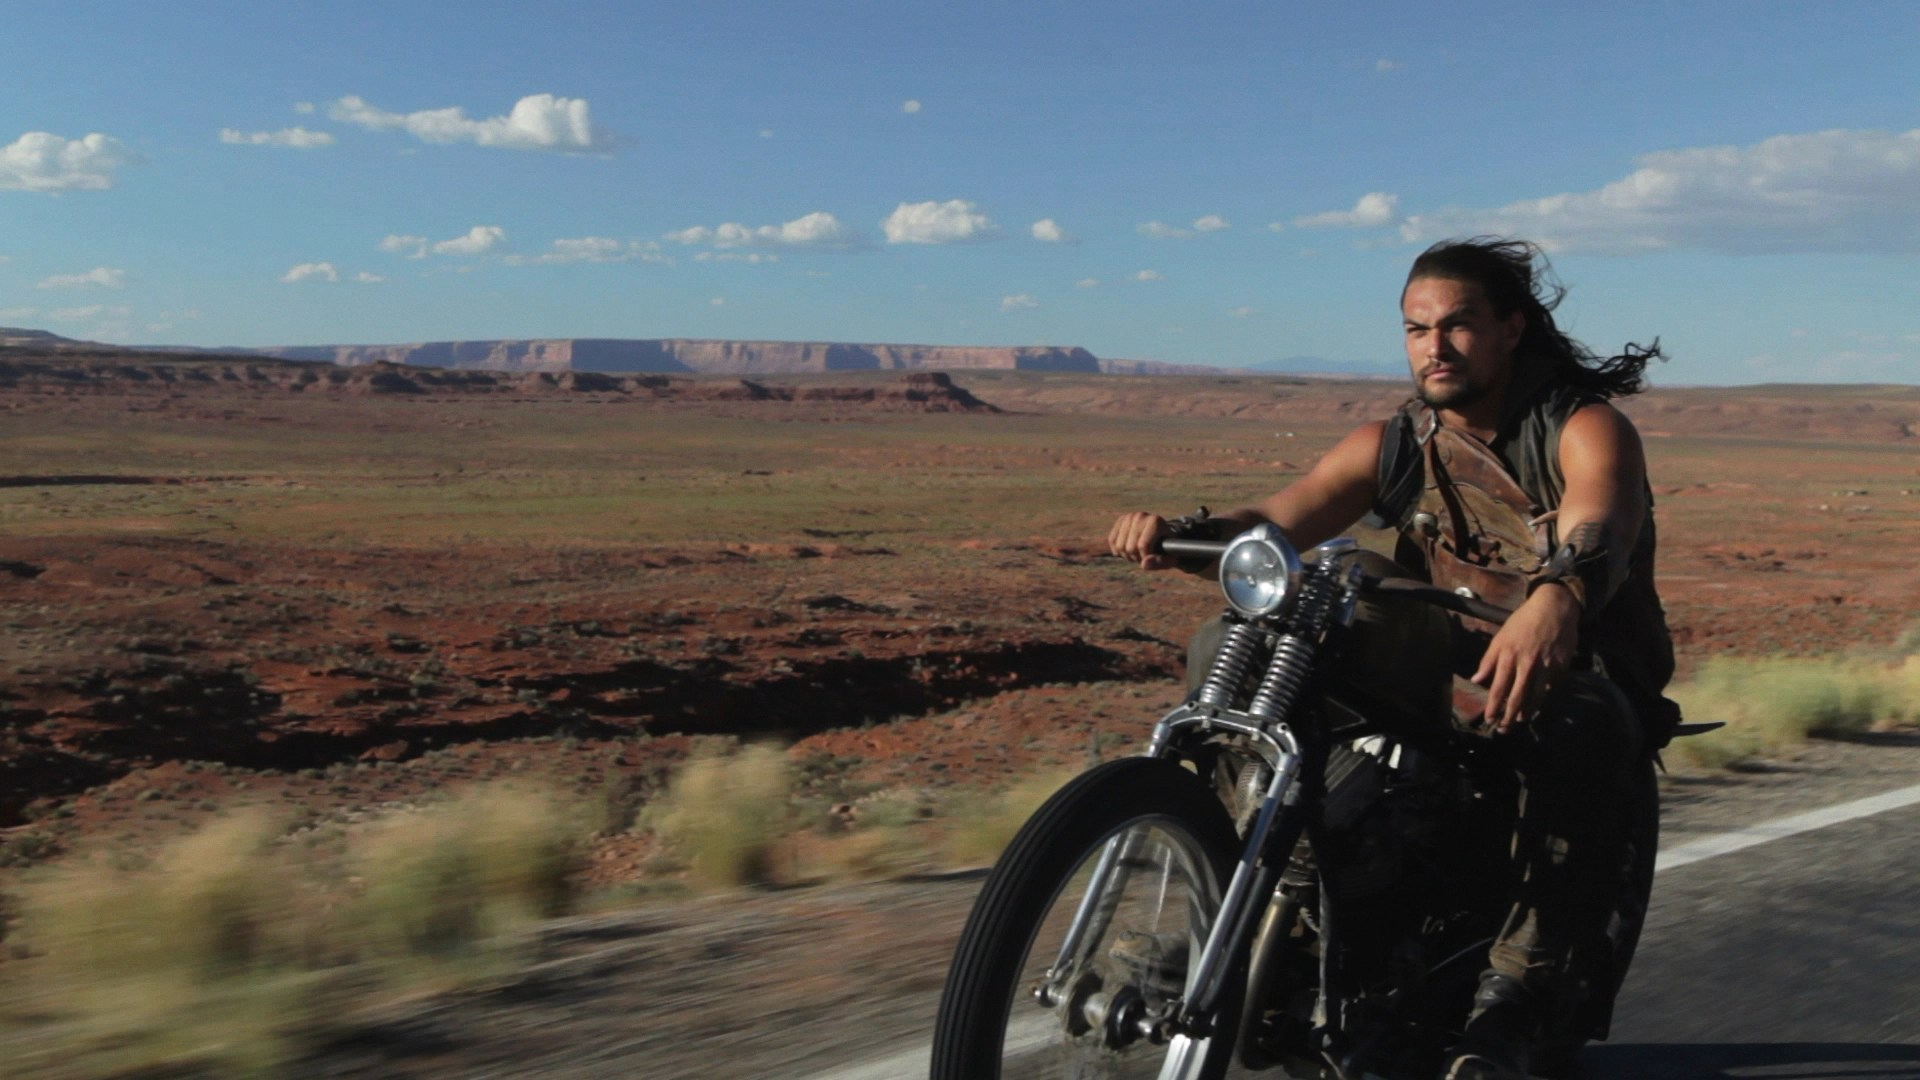 Bikers Quotes Wallpapers The Road To Paloma Movie Bike Interview With Jason Momoa